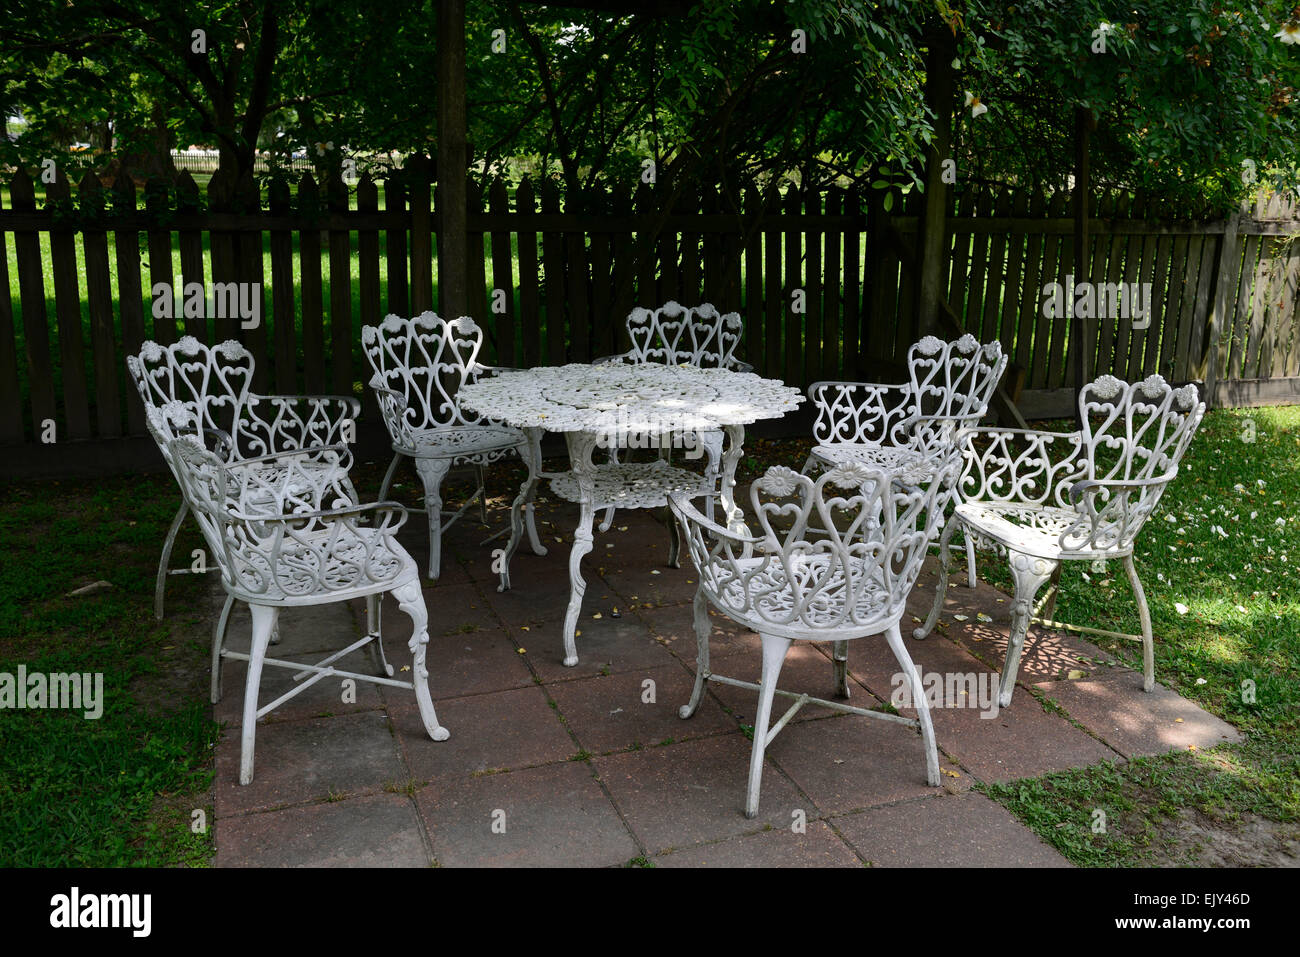 White wrought iron metal table chairs patio furniture shade shaded sheltered garden gardening rm floral